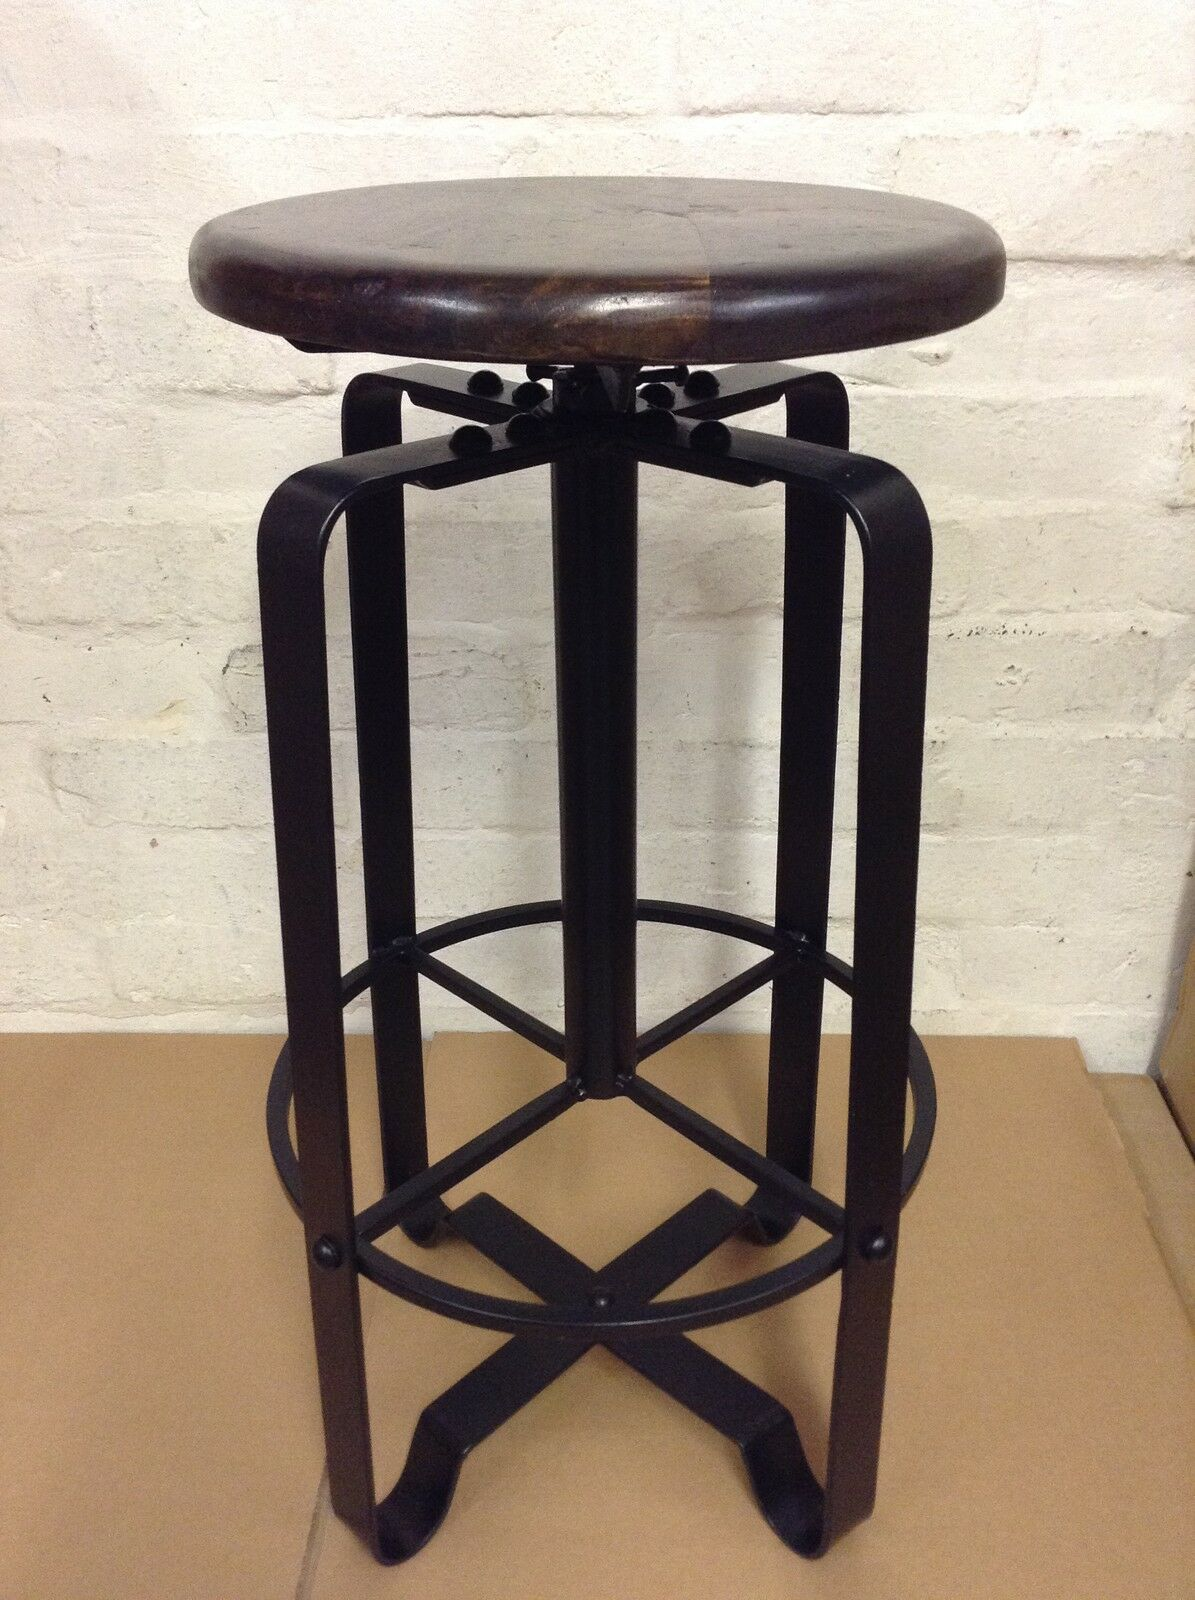 Industrial bar stool wooden top shabby vintage chic kitchen side table seat 156